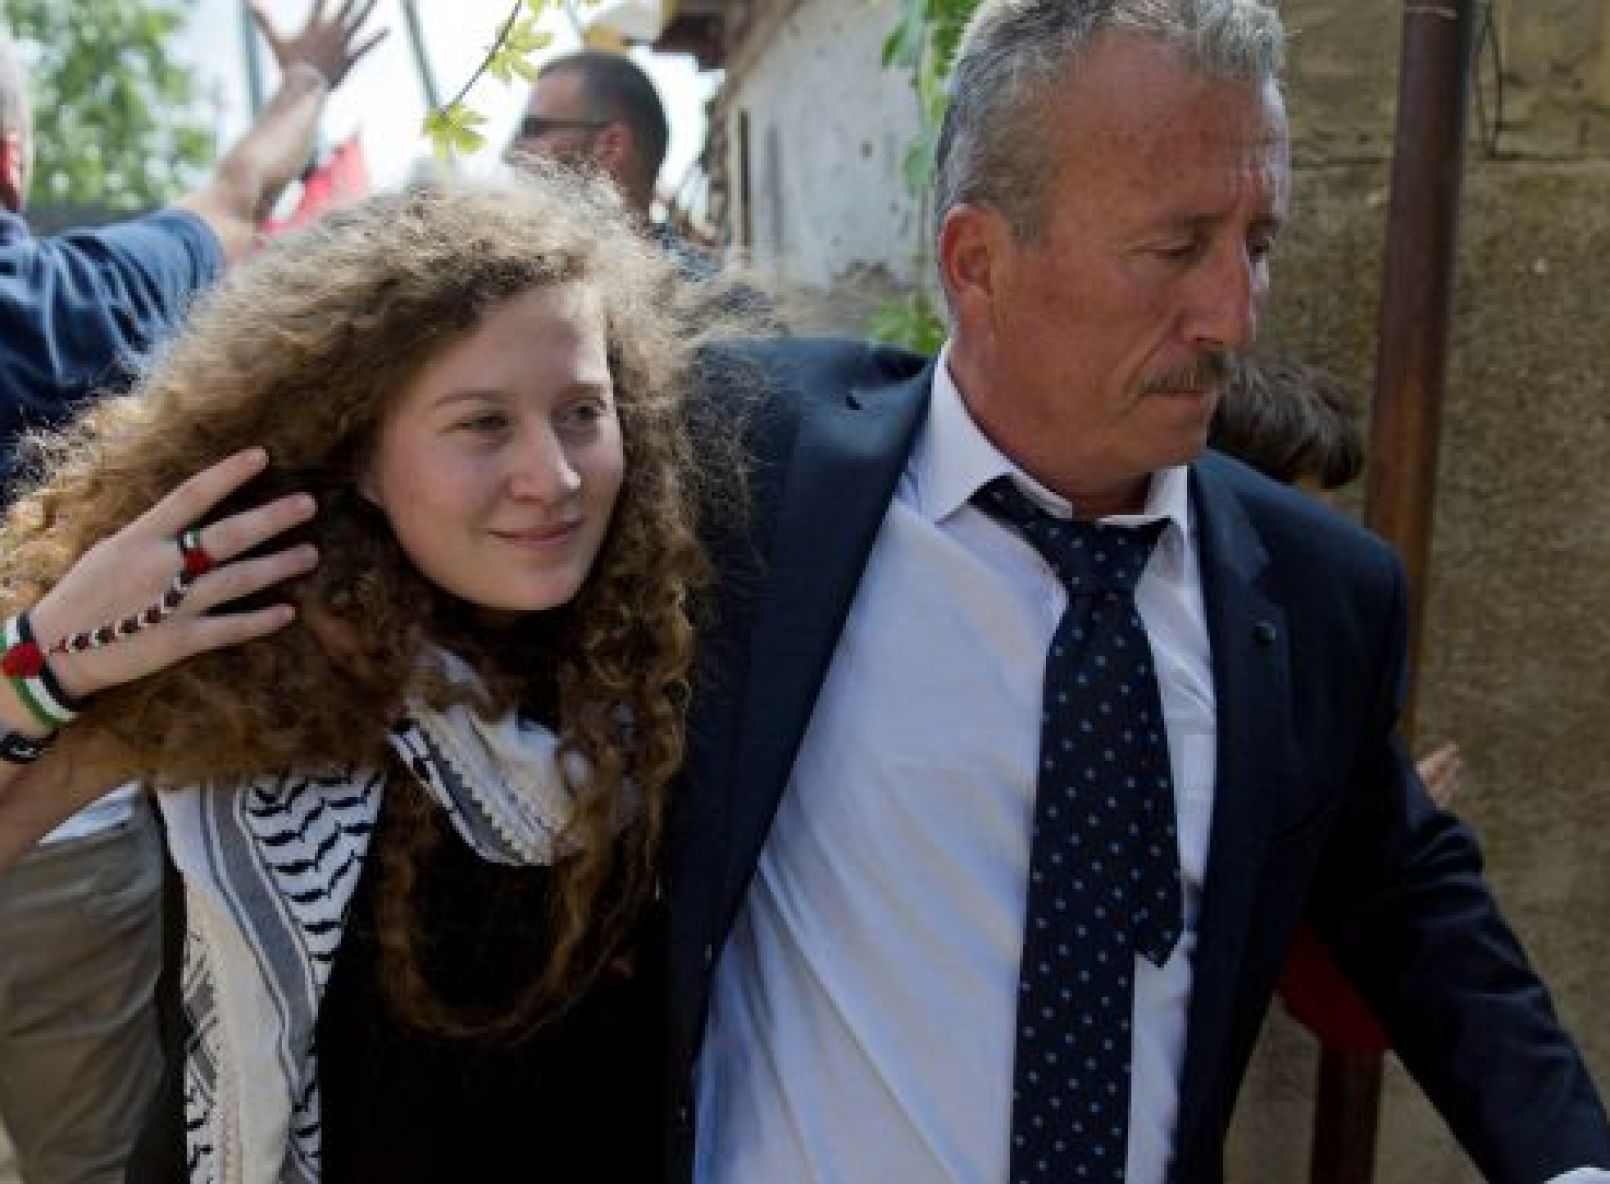 Ahed Tamimi walks with with her father Bassem upon her arrival at their West Bank home village of Nebi Saleh, near Ramallah, July 29, 2018.